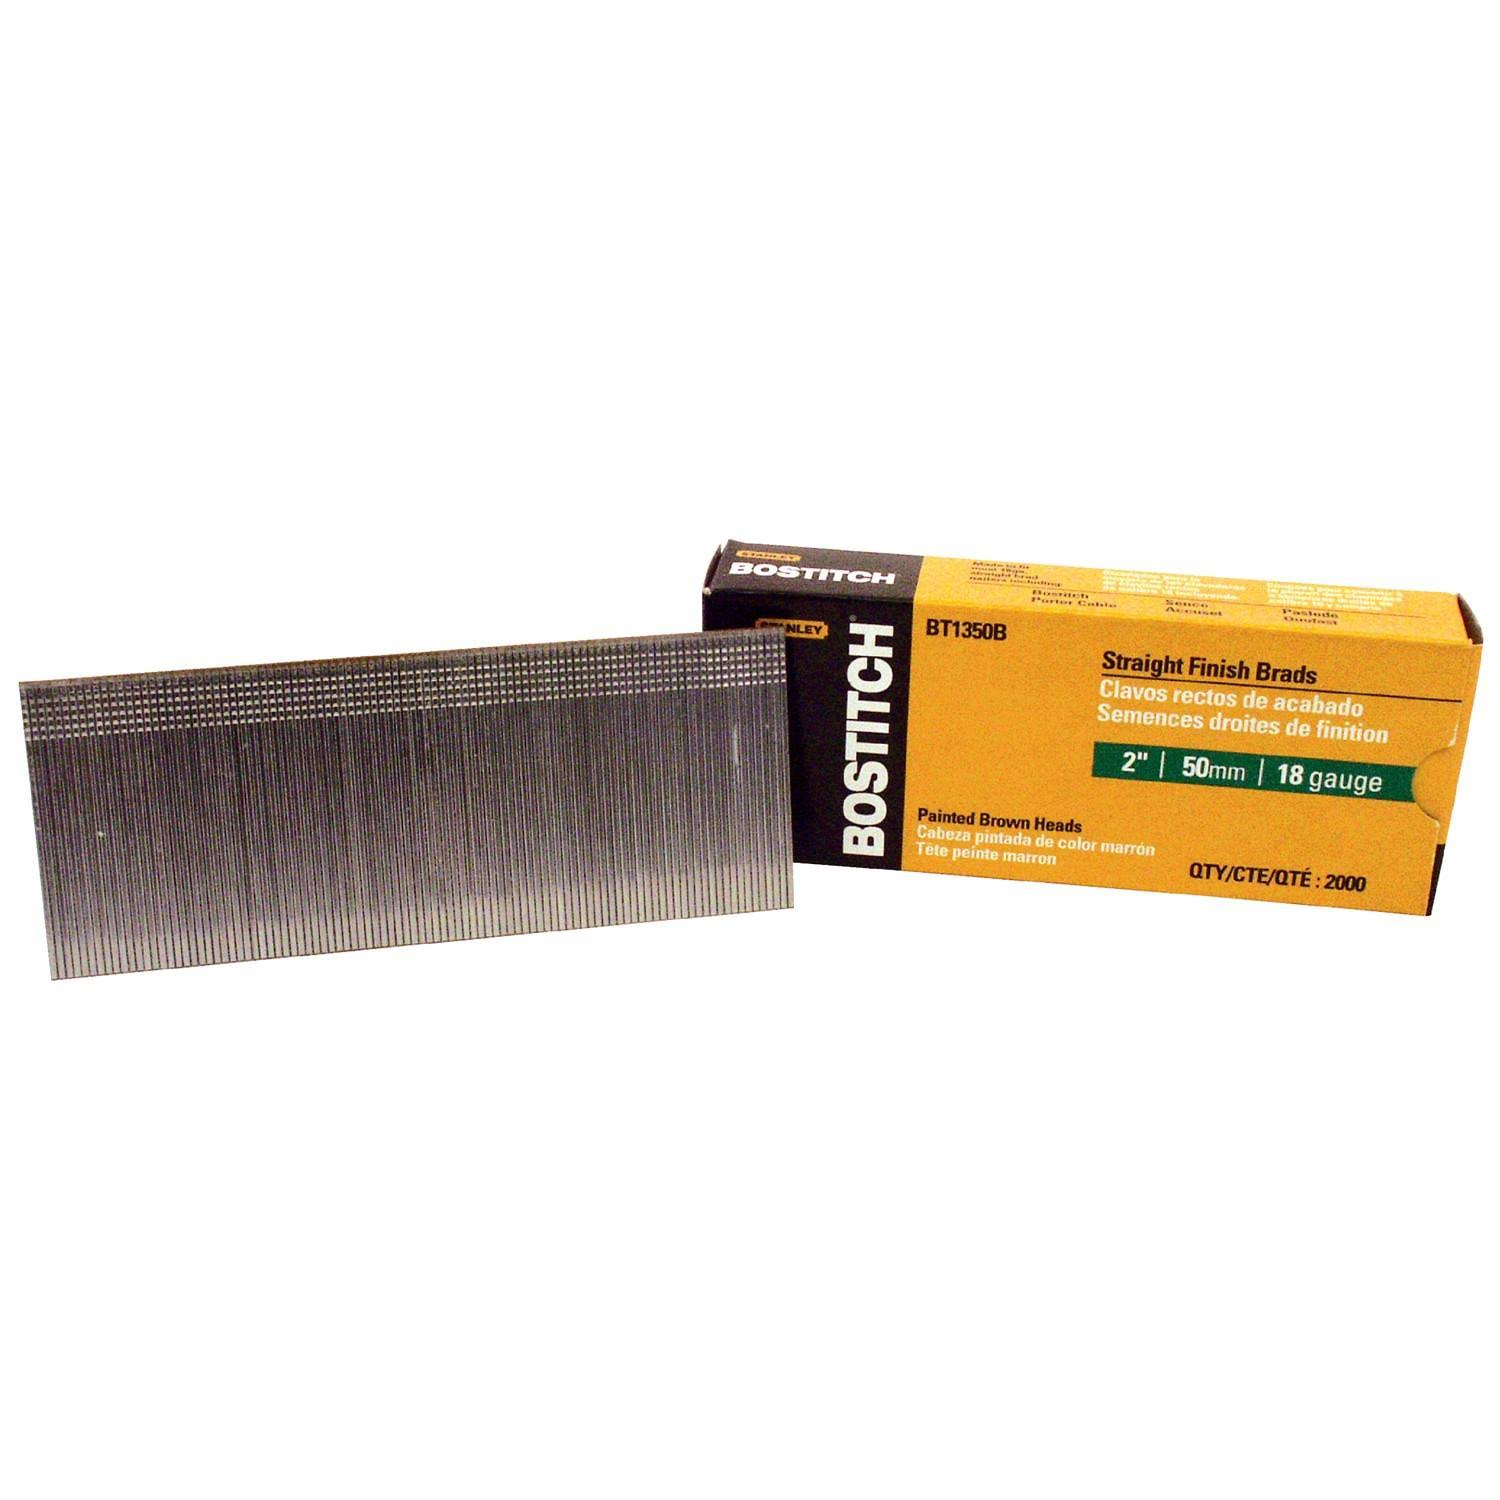 "Stanley Bostitch Brad Nails - 2"", 18 Gauge"